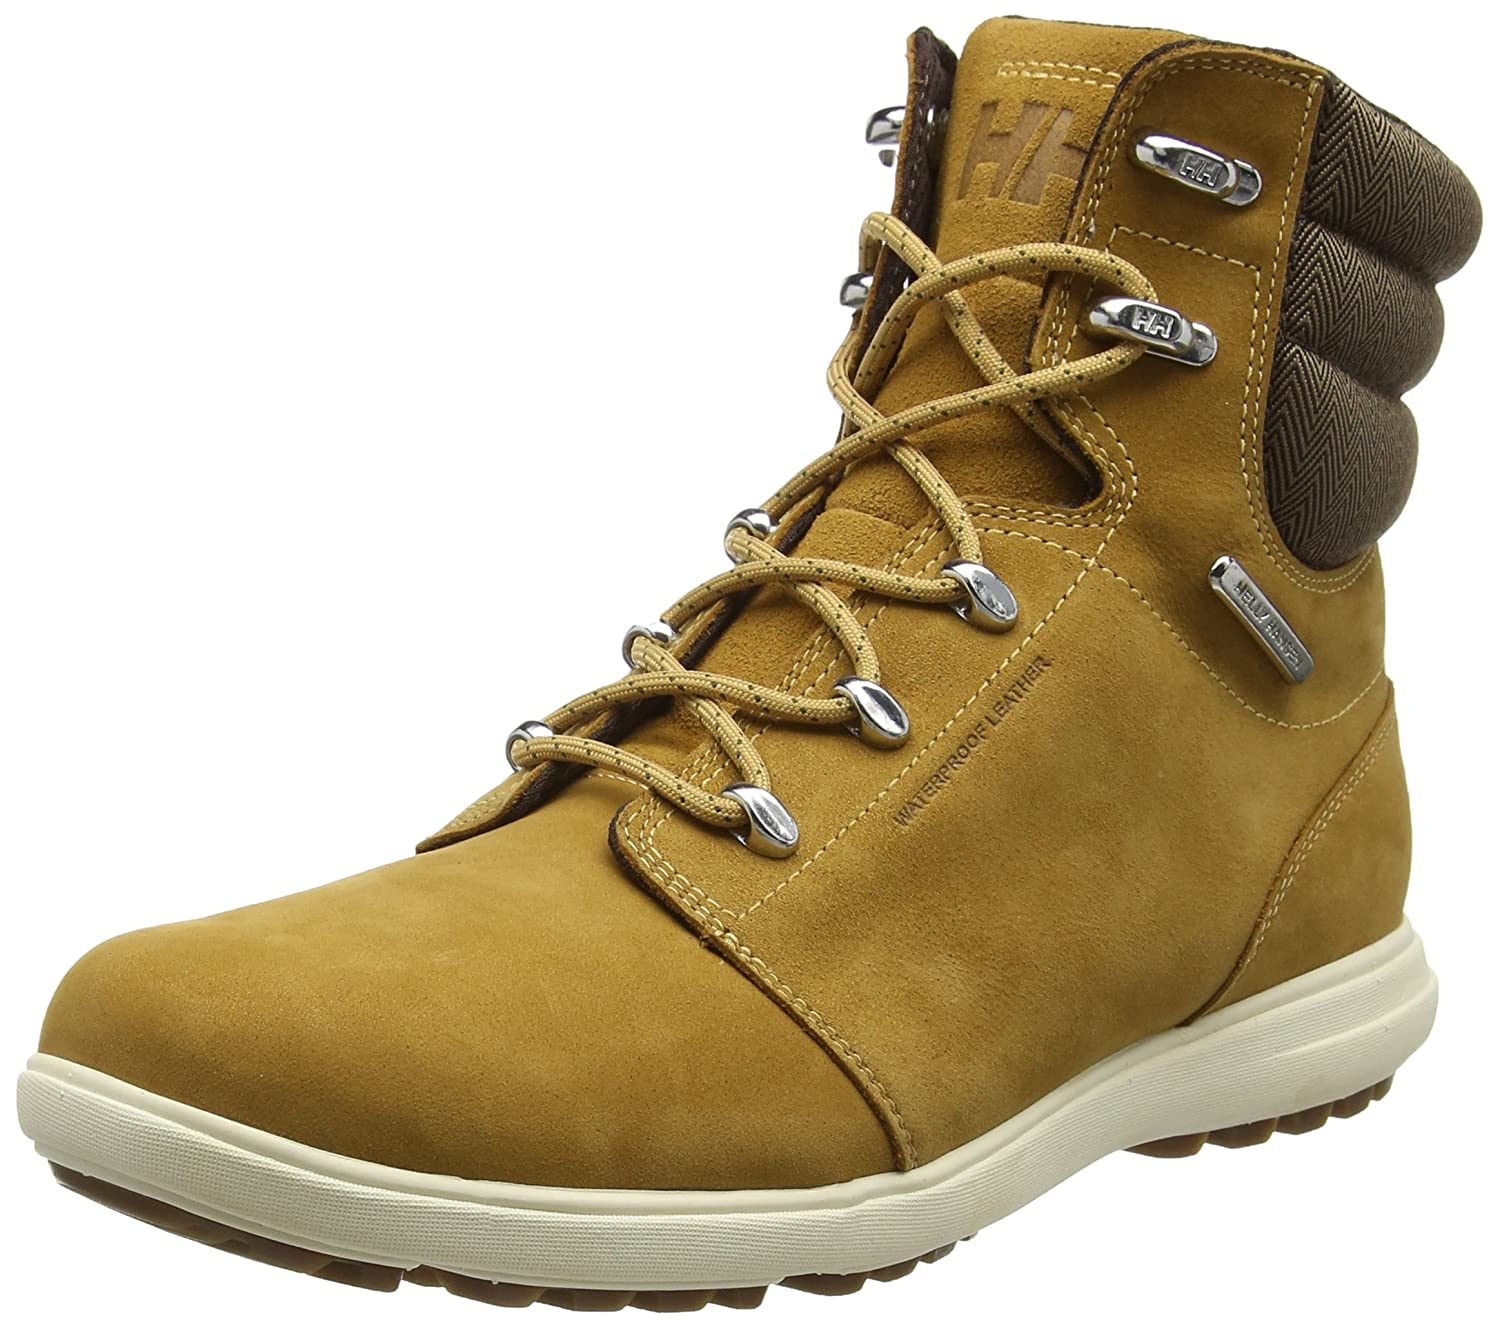 Helly Hansen Herren A.s.t 2 Chukka Boots  New Wheat/Coffee Bean/Angora/Sperry Gum New Wheat/Coffee Bean/Angora/Sperry Gum